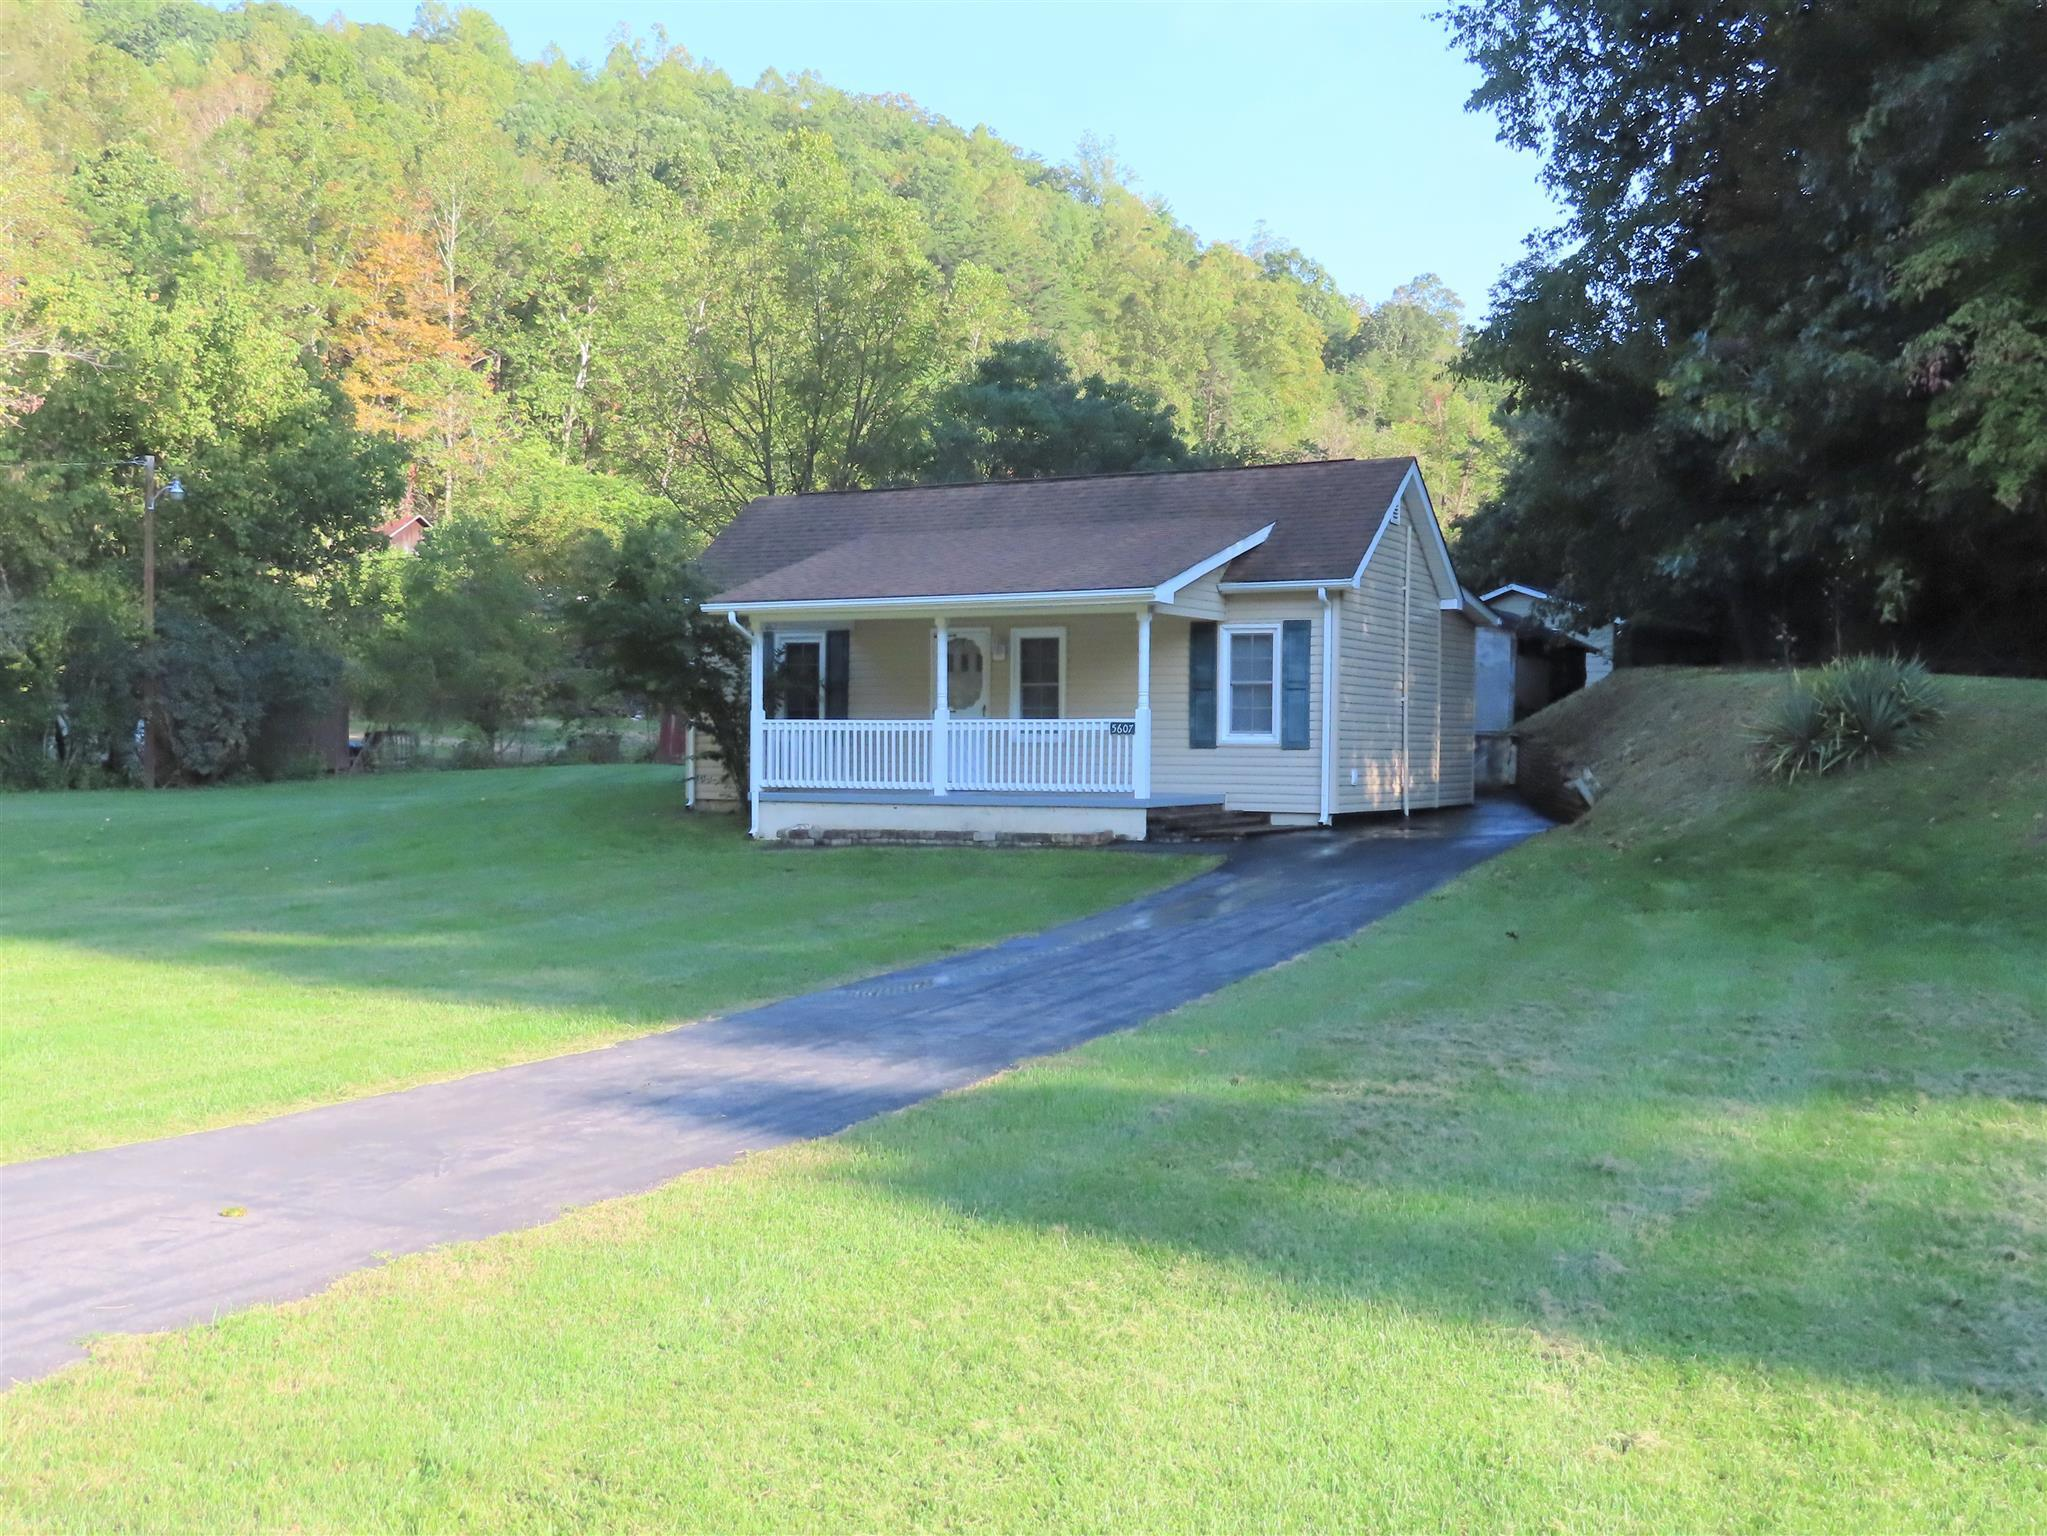 "• 2 BR – 1 BA Sweet Bungalow on .259 Acres • Updated Electrical – Replacement Windows • Paved Driveway – 24'6"" X 16'6"" Garage • Windows & Siding – 10 Years Old • Shingled Roof – 12 Years Old • Large Kitchen With Center Bar • Solid Surface Countertops – Propane Gas Stove • Covered Front Porch – Concrete – Vinyl Railing • Concrete Covered Side Porch"